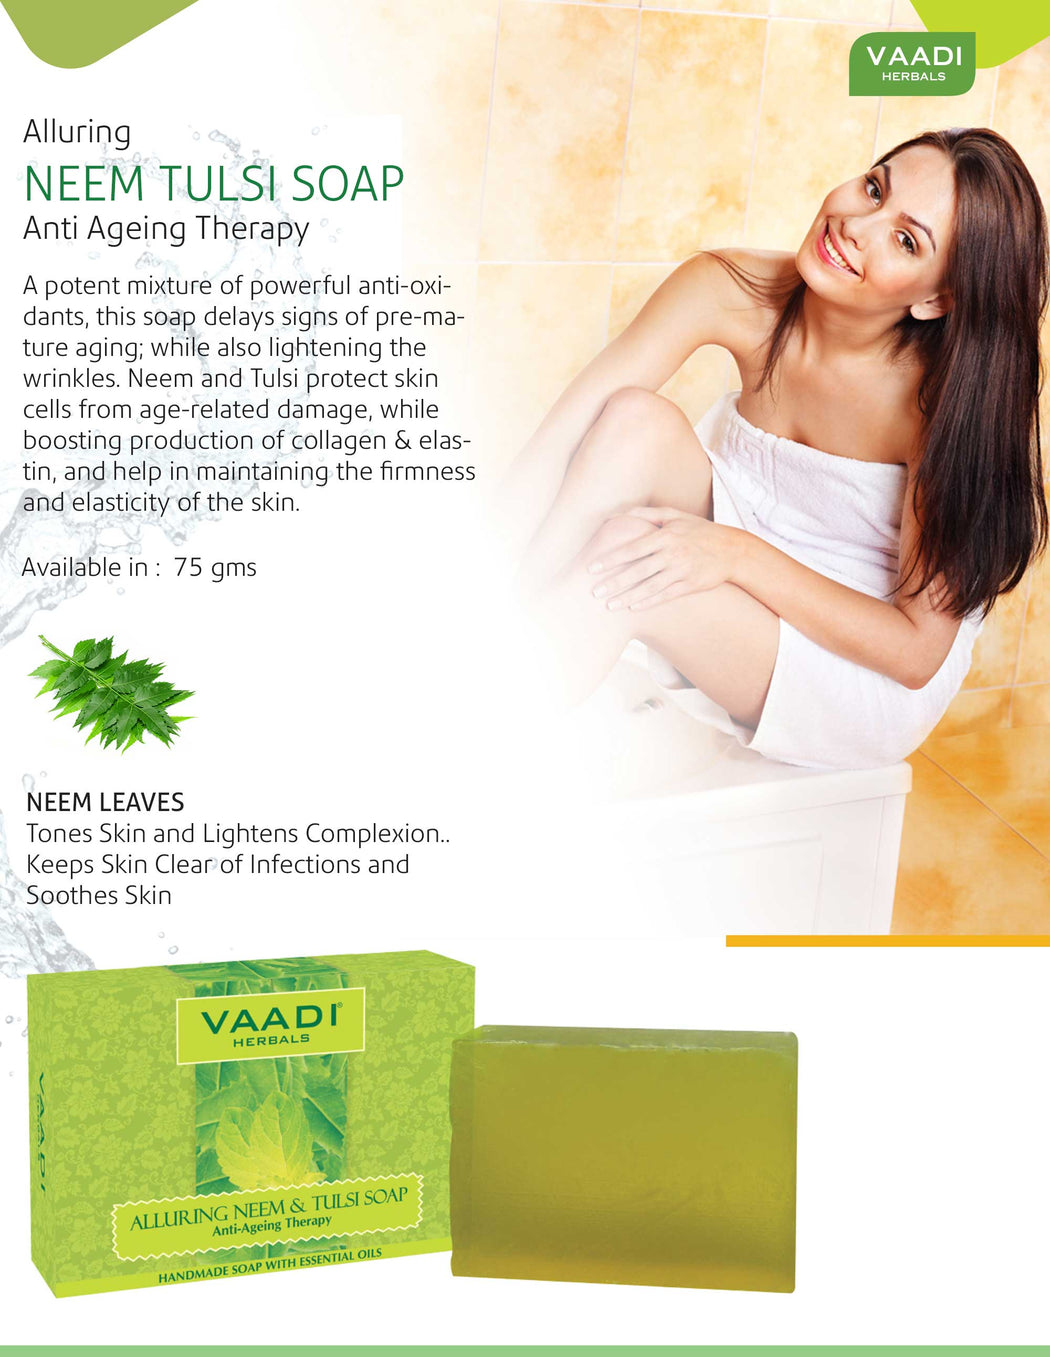 Alluring Neem-Tulsi Soap with Vitamin E & Tea Tree Oil (75 gms)